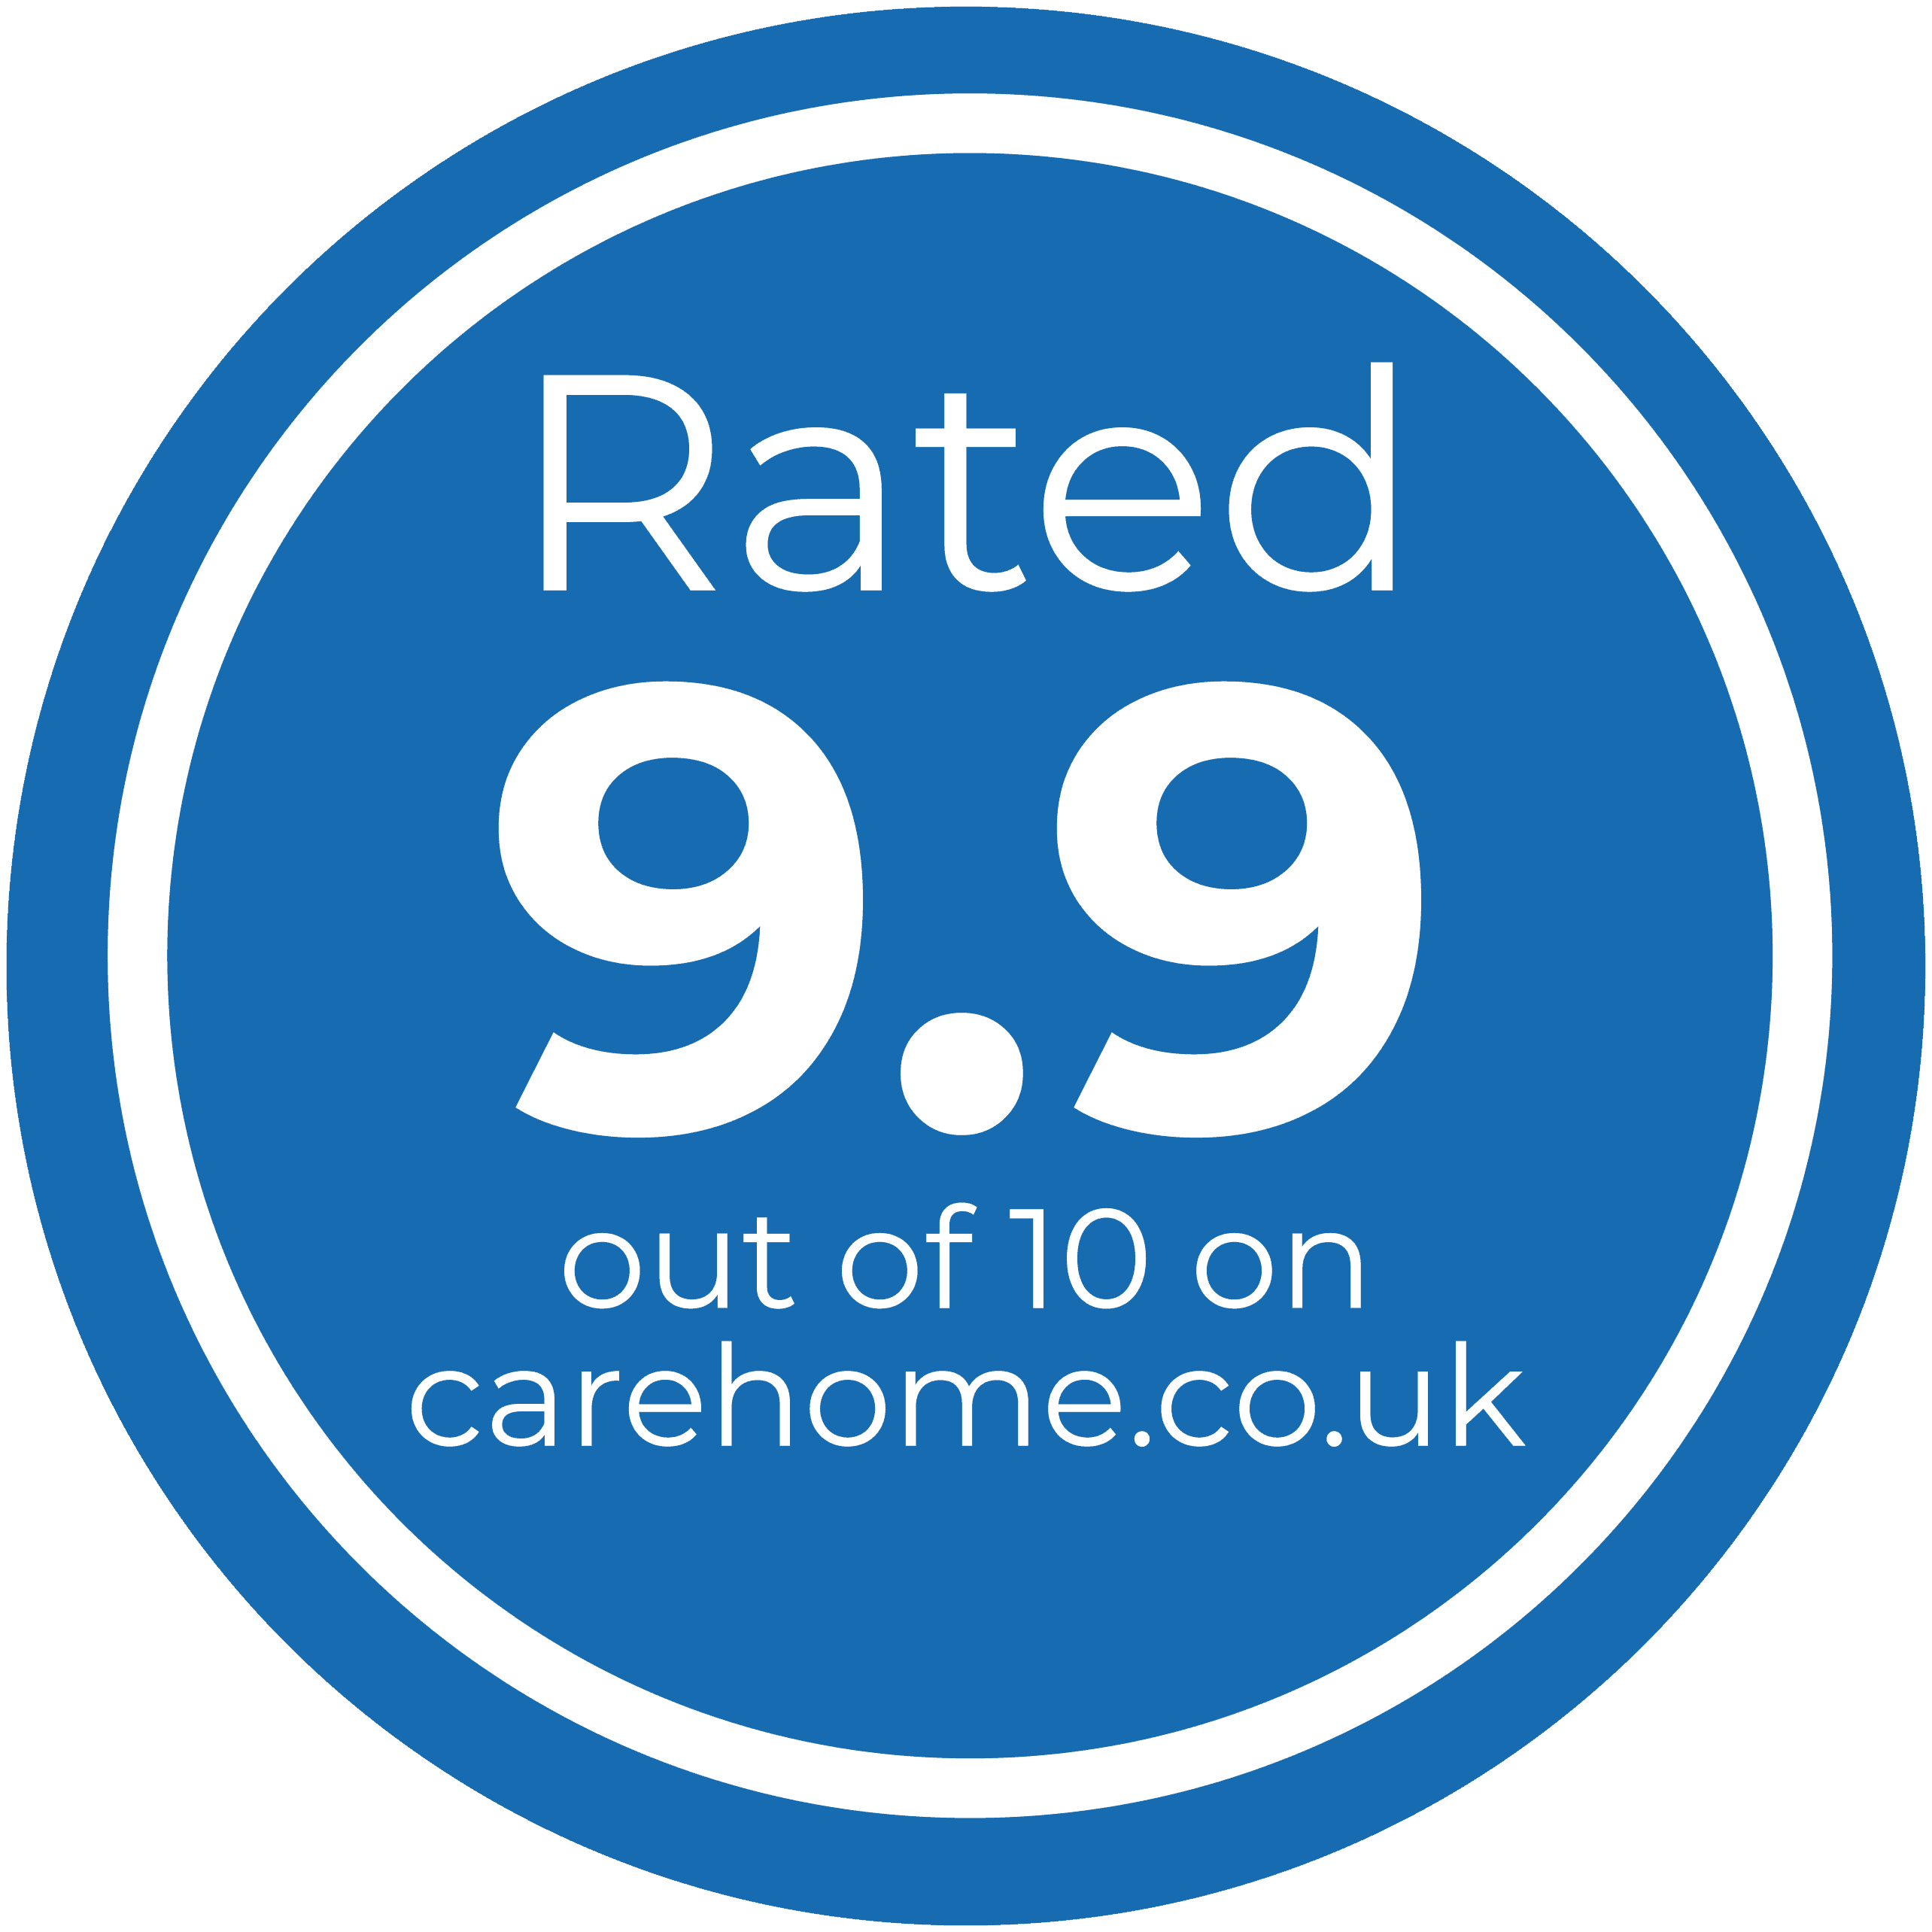 carehome.co.uk badge